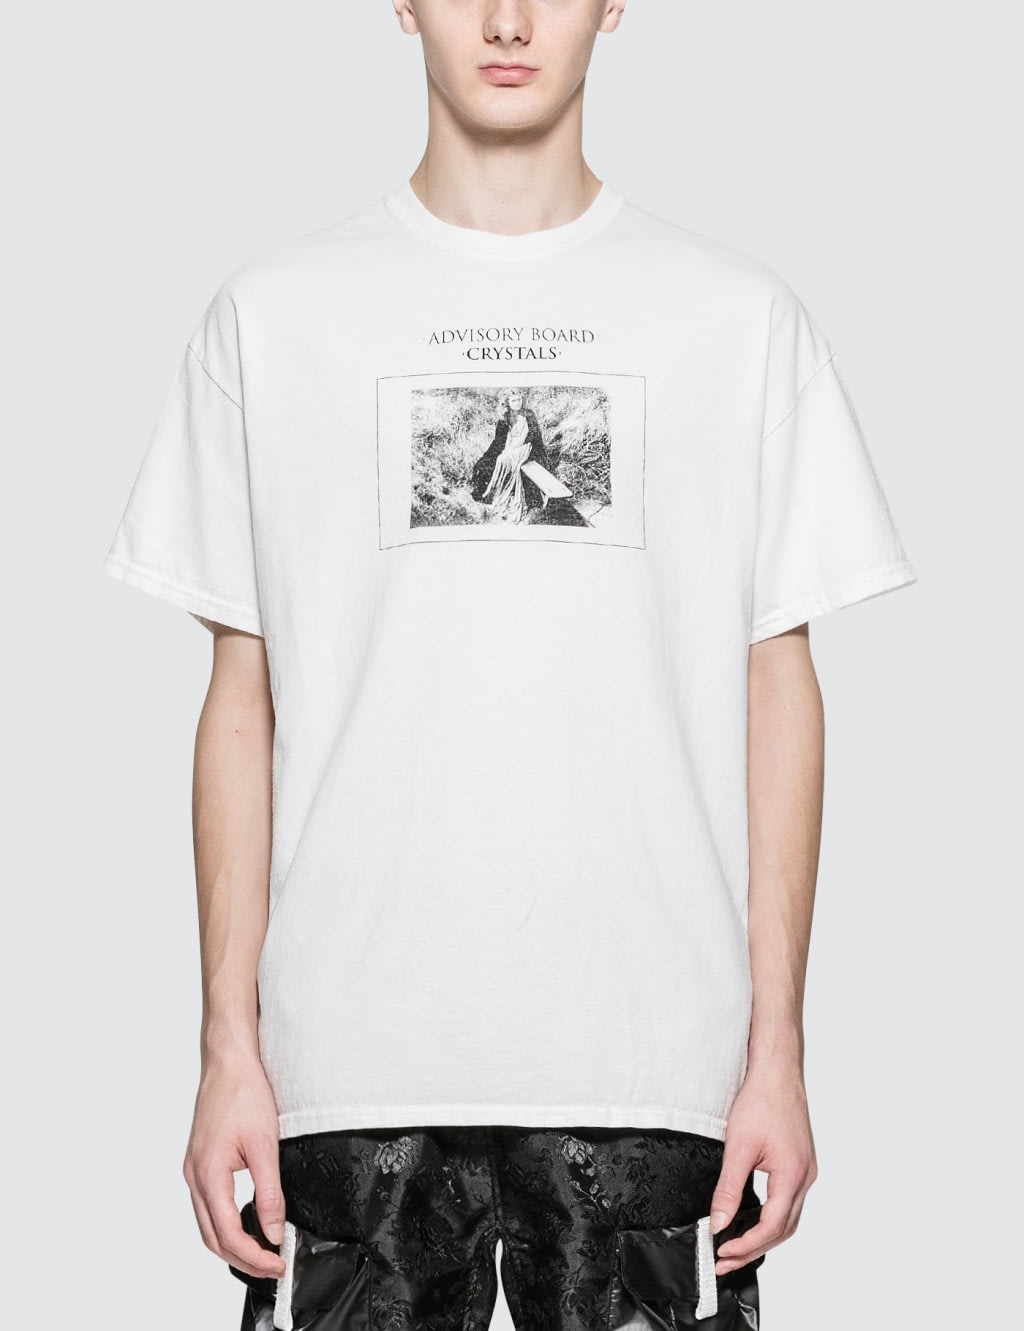 ... Advisory Board Crystals Komakino T-Shirt ...